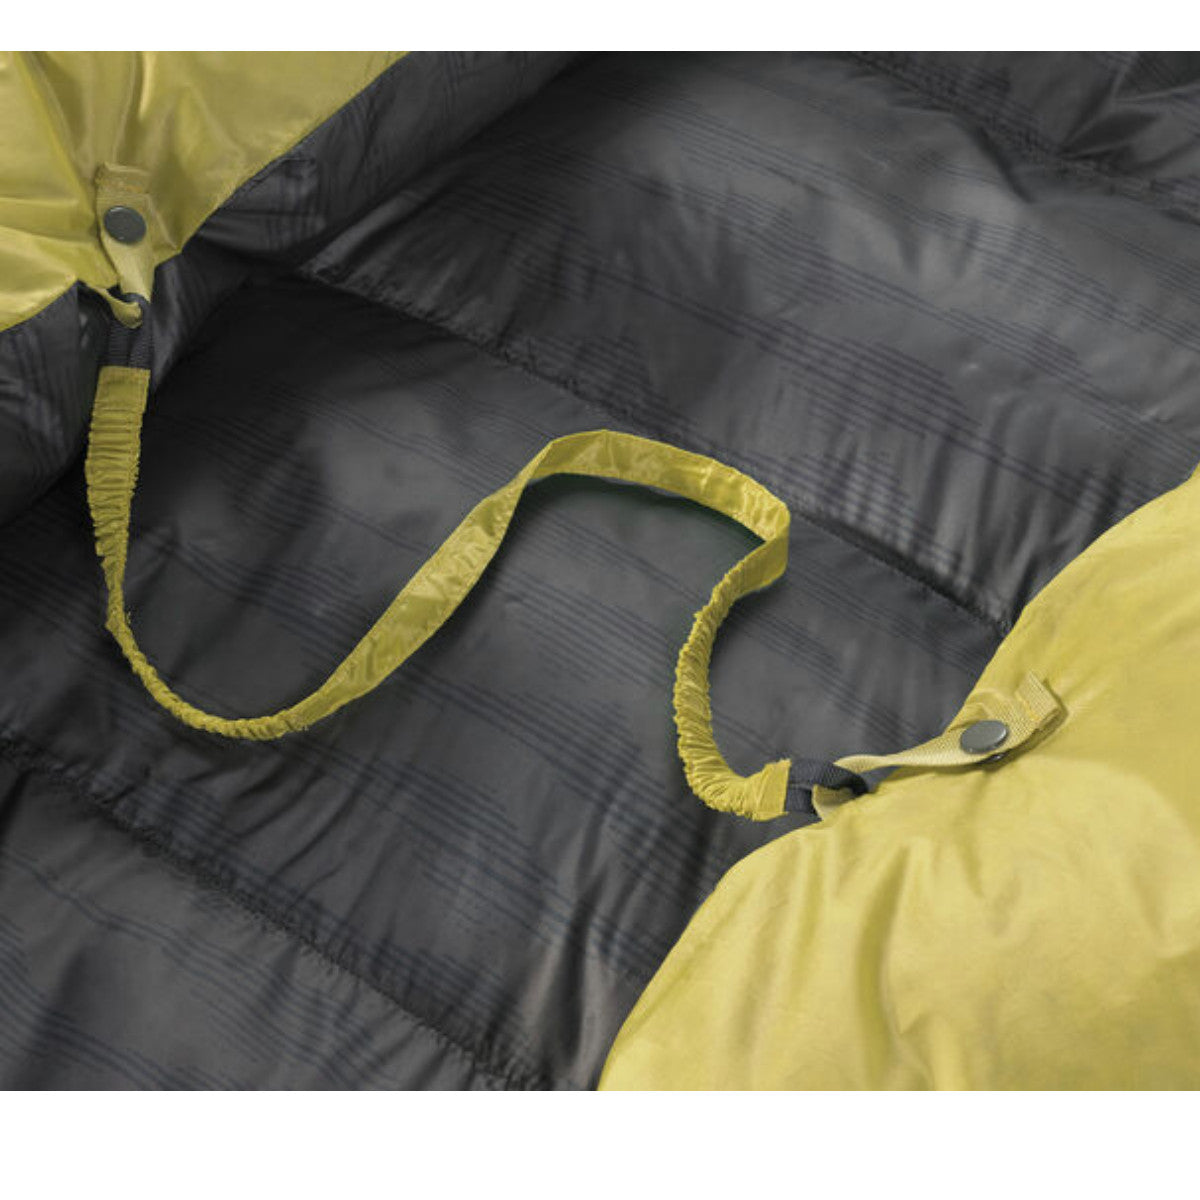 Thermarest Corus 20F/-6C Quilt in golden colour showing mattress strap attachment